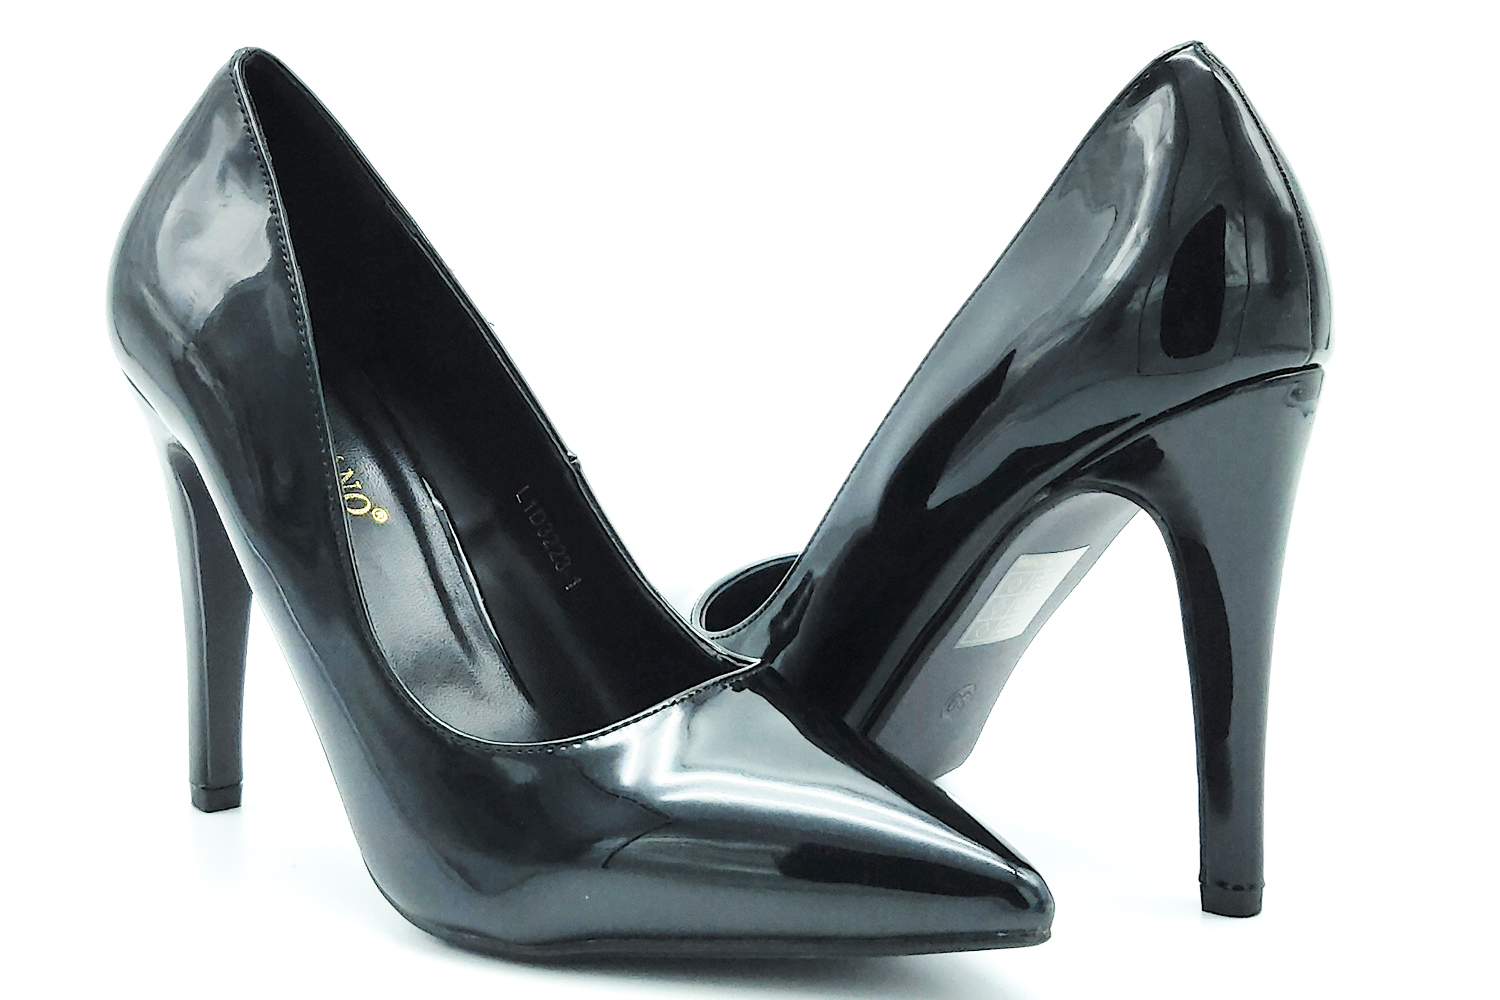 Shoes, decollete decolte' patent leather stiletto heel black sexy women's elegant